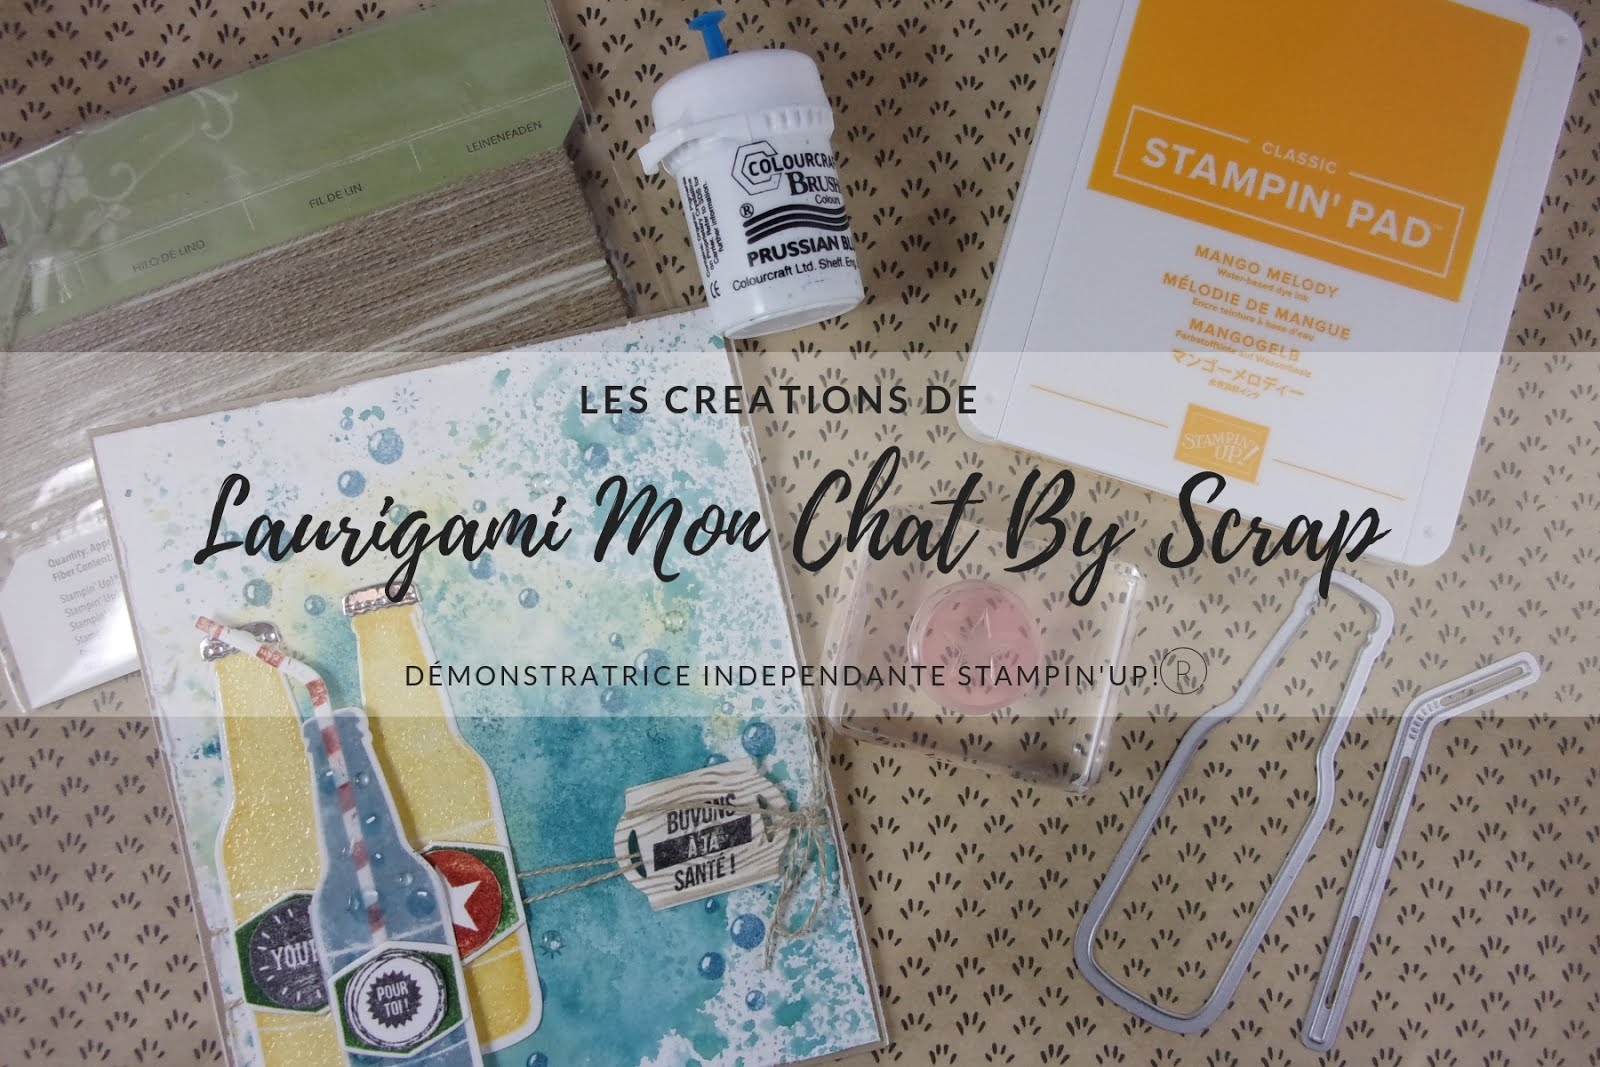 Laurigami Mon chat by scrap Stampin'Up!